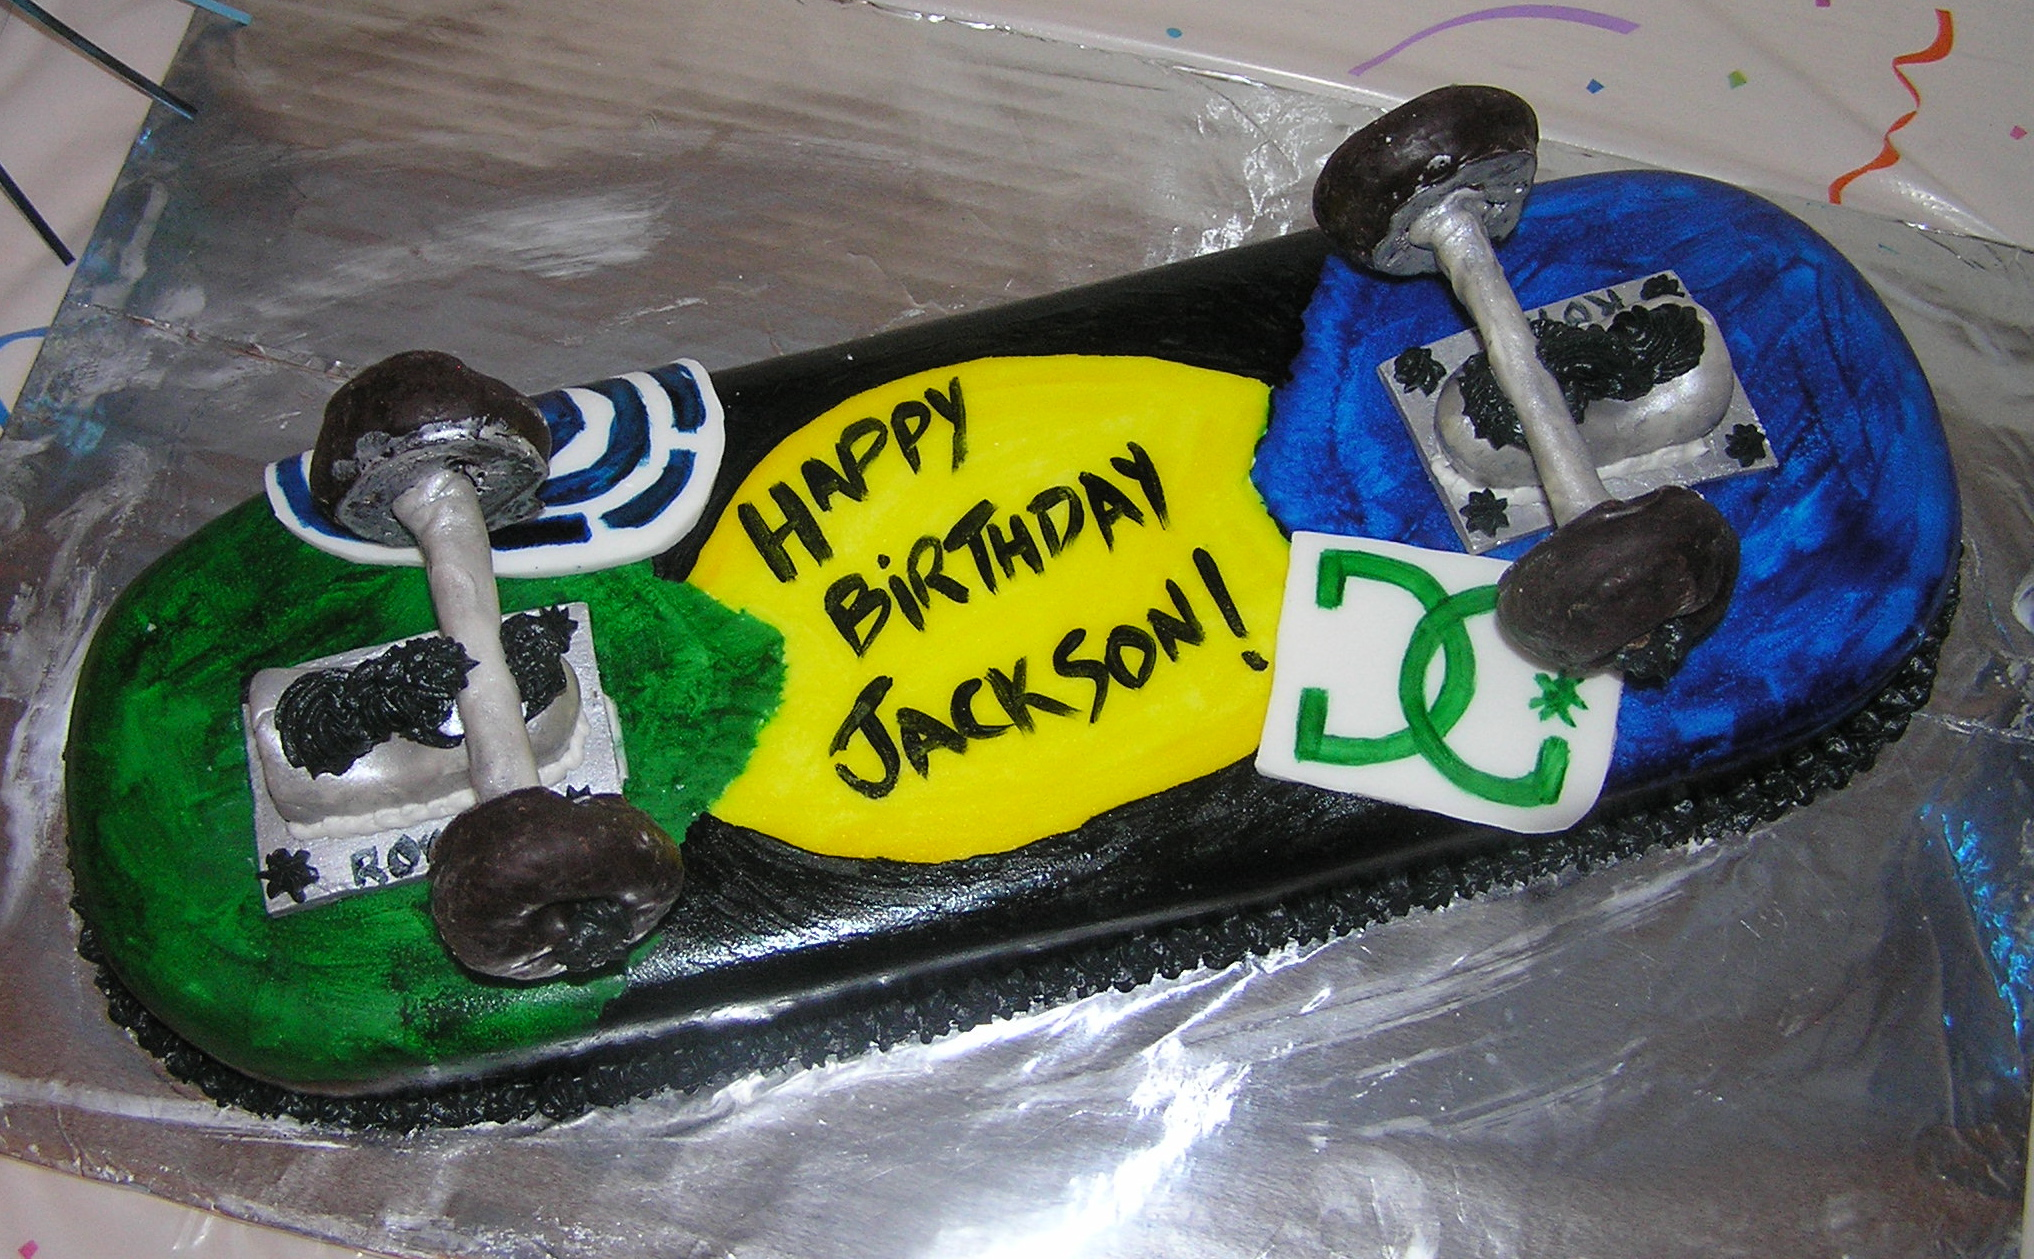 5) Skateboard:  A birthday cake for one of my favorite dudes ever. Doughnut wheels. And I learned what trucks are.